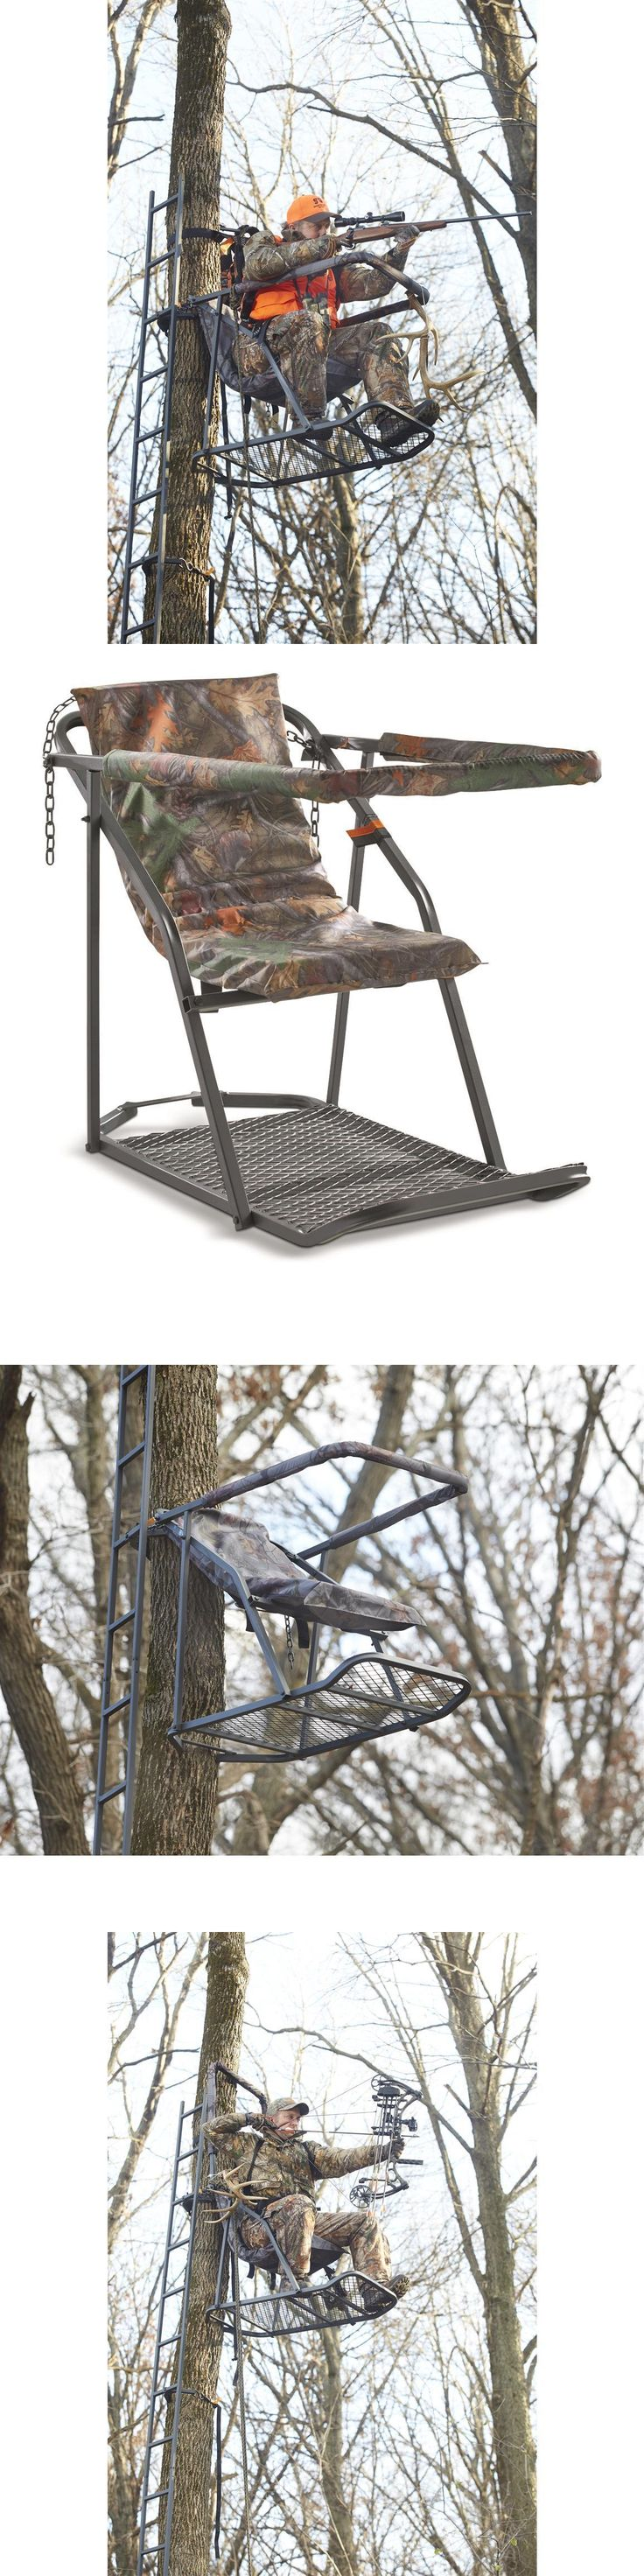 Bow hunting chair - Tree Stands 52508 Hunting Tree Platform Stand Bow Rifle Big Game Deer Safe Shooting Rail